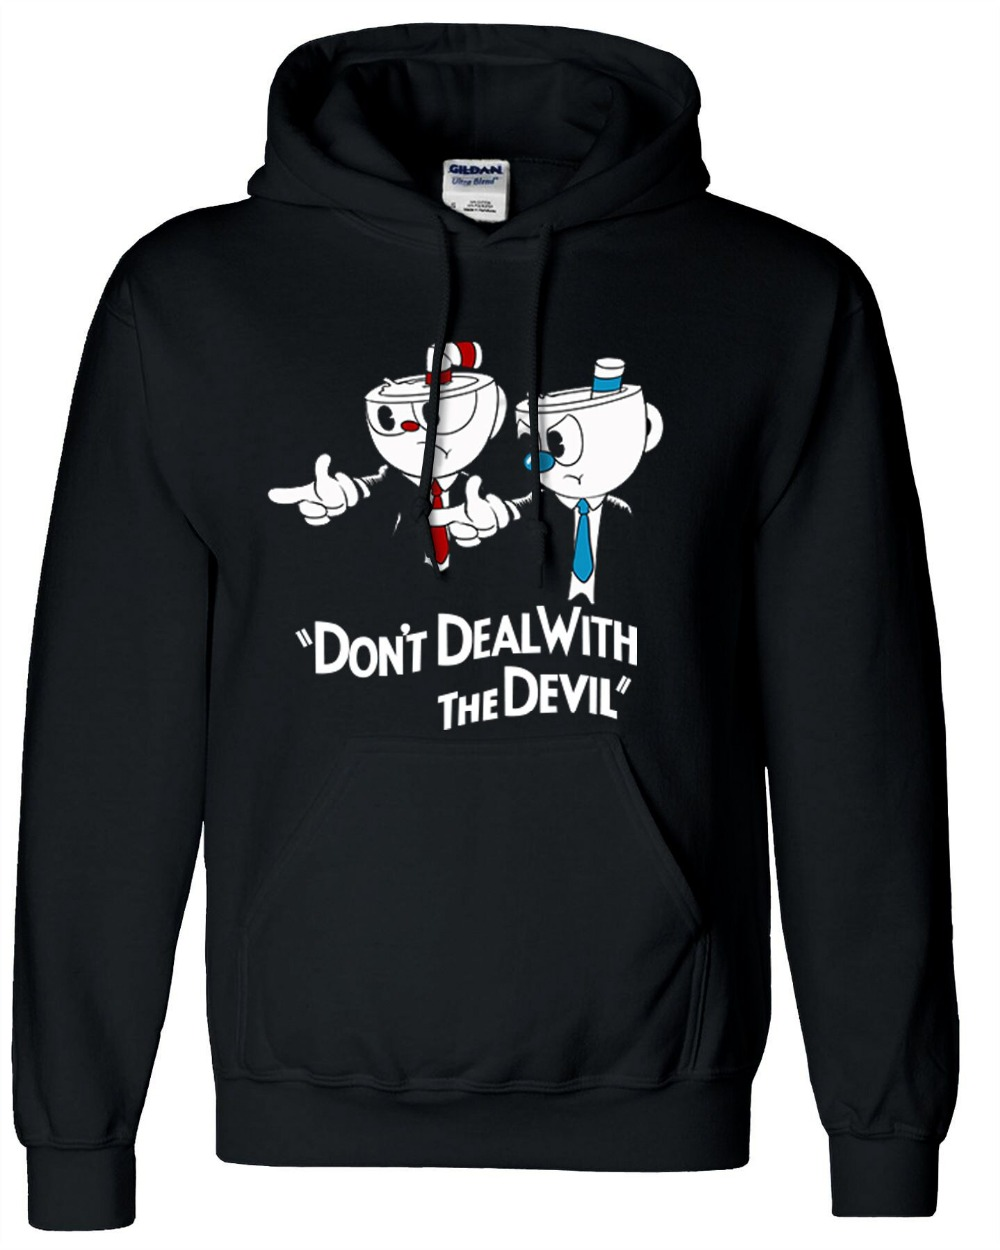 Hot Game Cuphead Hoodies Zip Up Cotton Black Hooded Winter Warm Fleece Black Sweatshirts Coats Hoodie